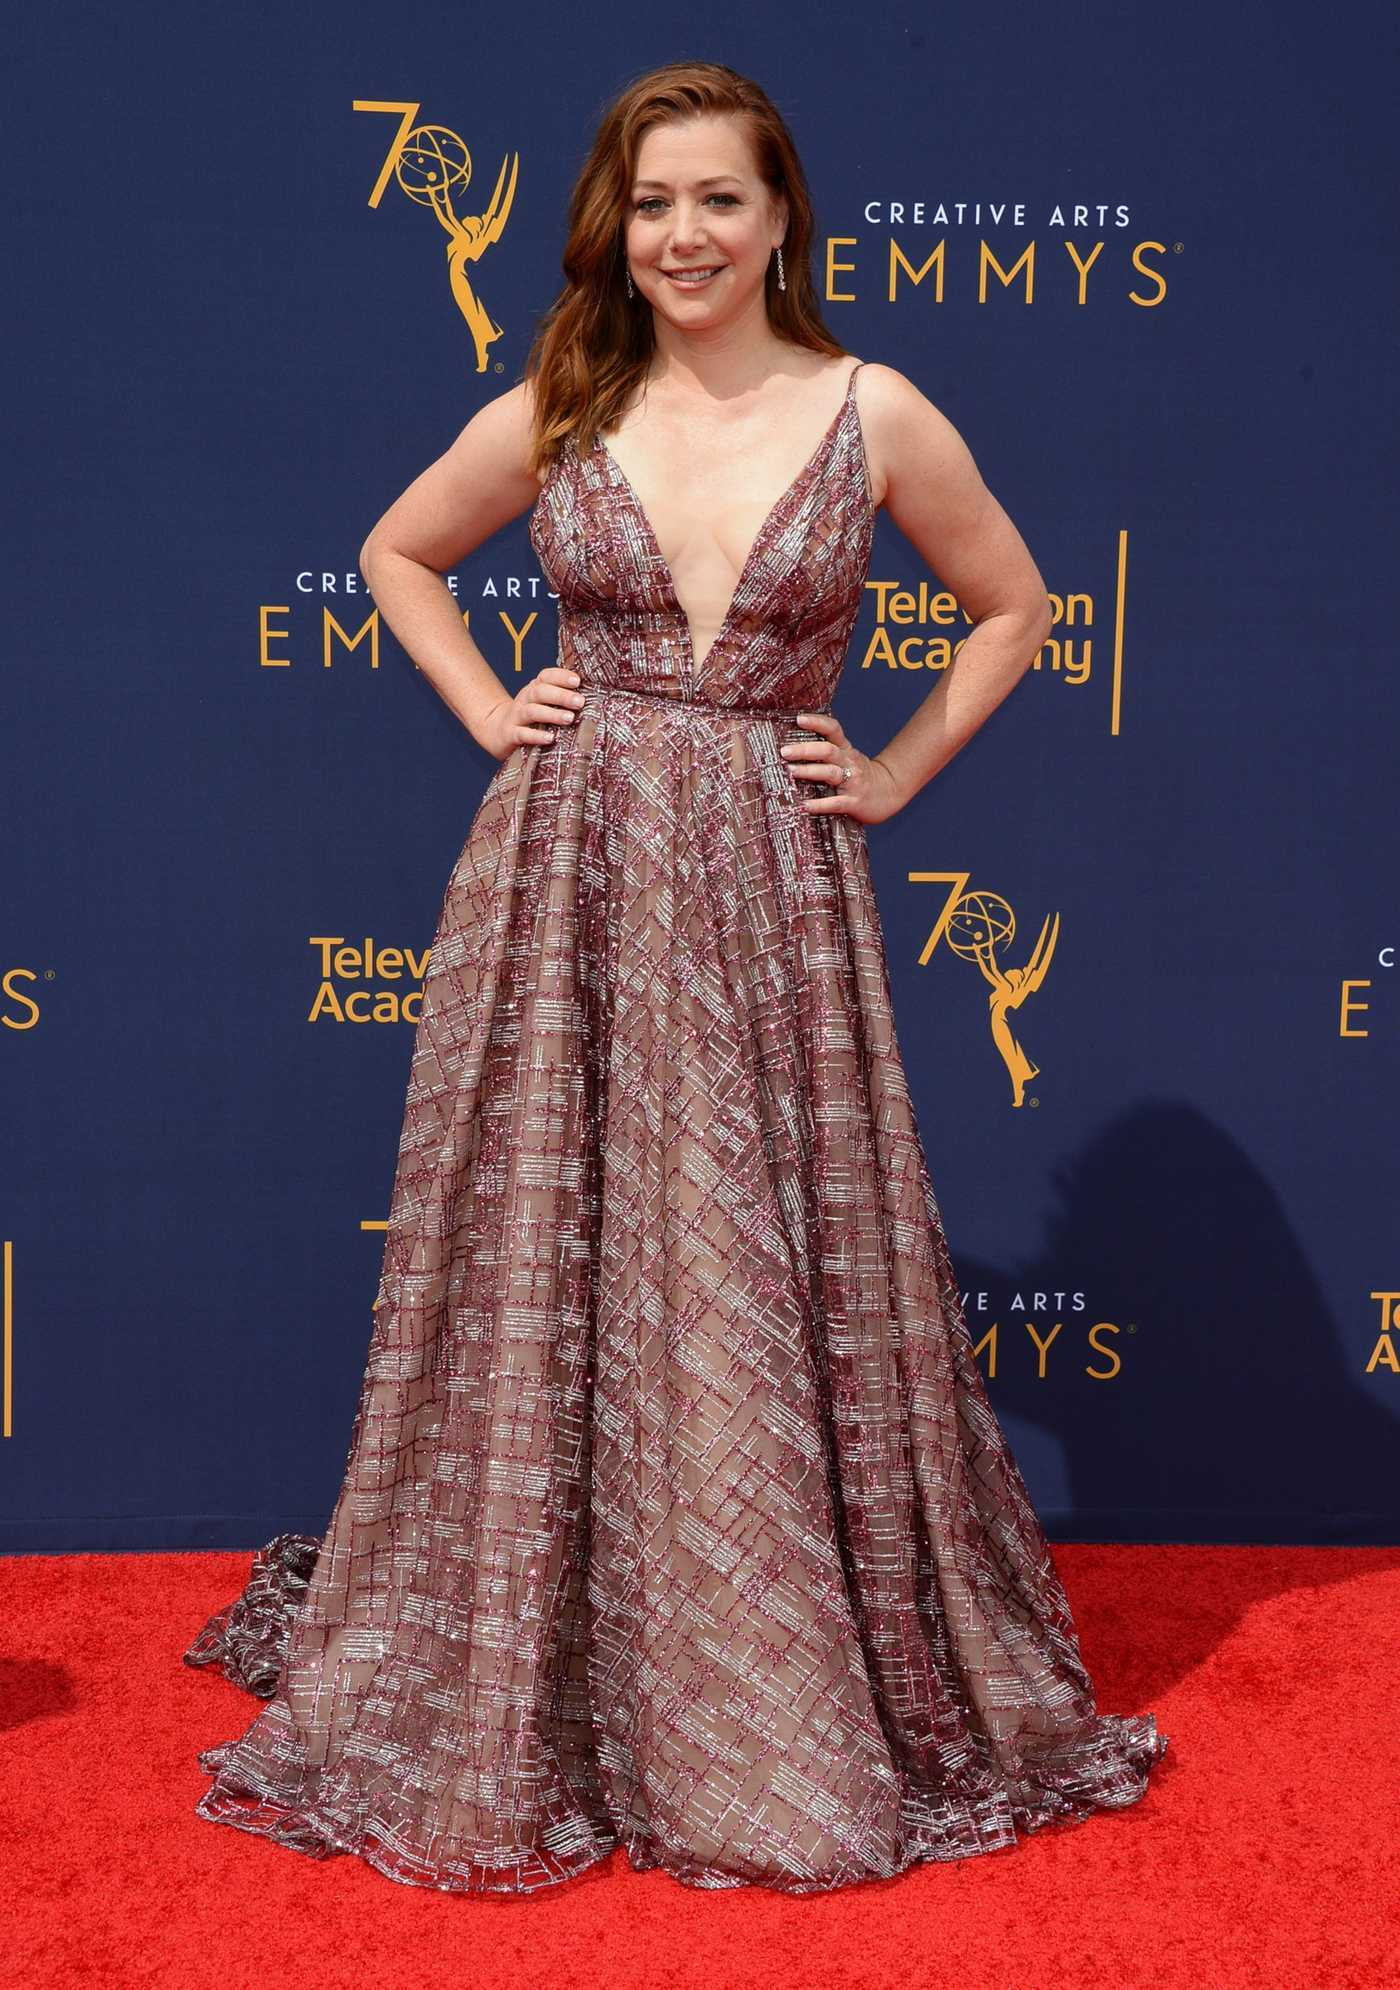 Alyson Hannigan at the 70th Primetime Creative Arts Emmy Awards in LA 09/09/2018